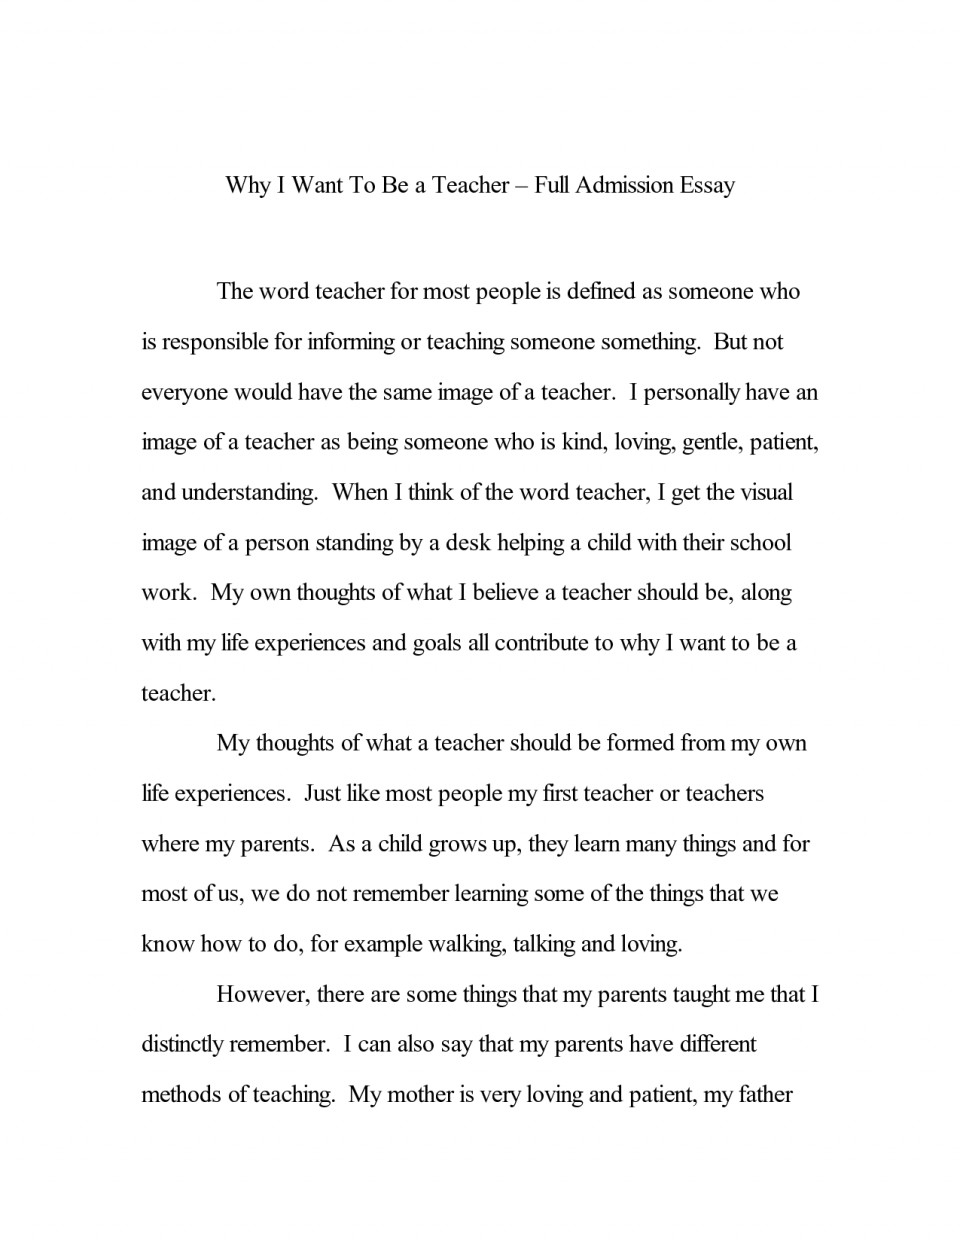 004 Writing College Application Essay Rare A Topics To Write On Tips For About Yourself 960